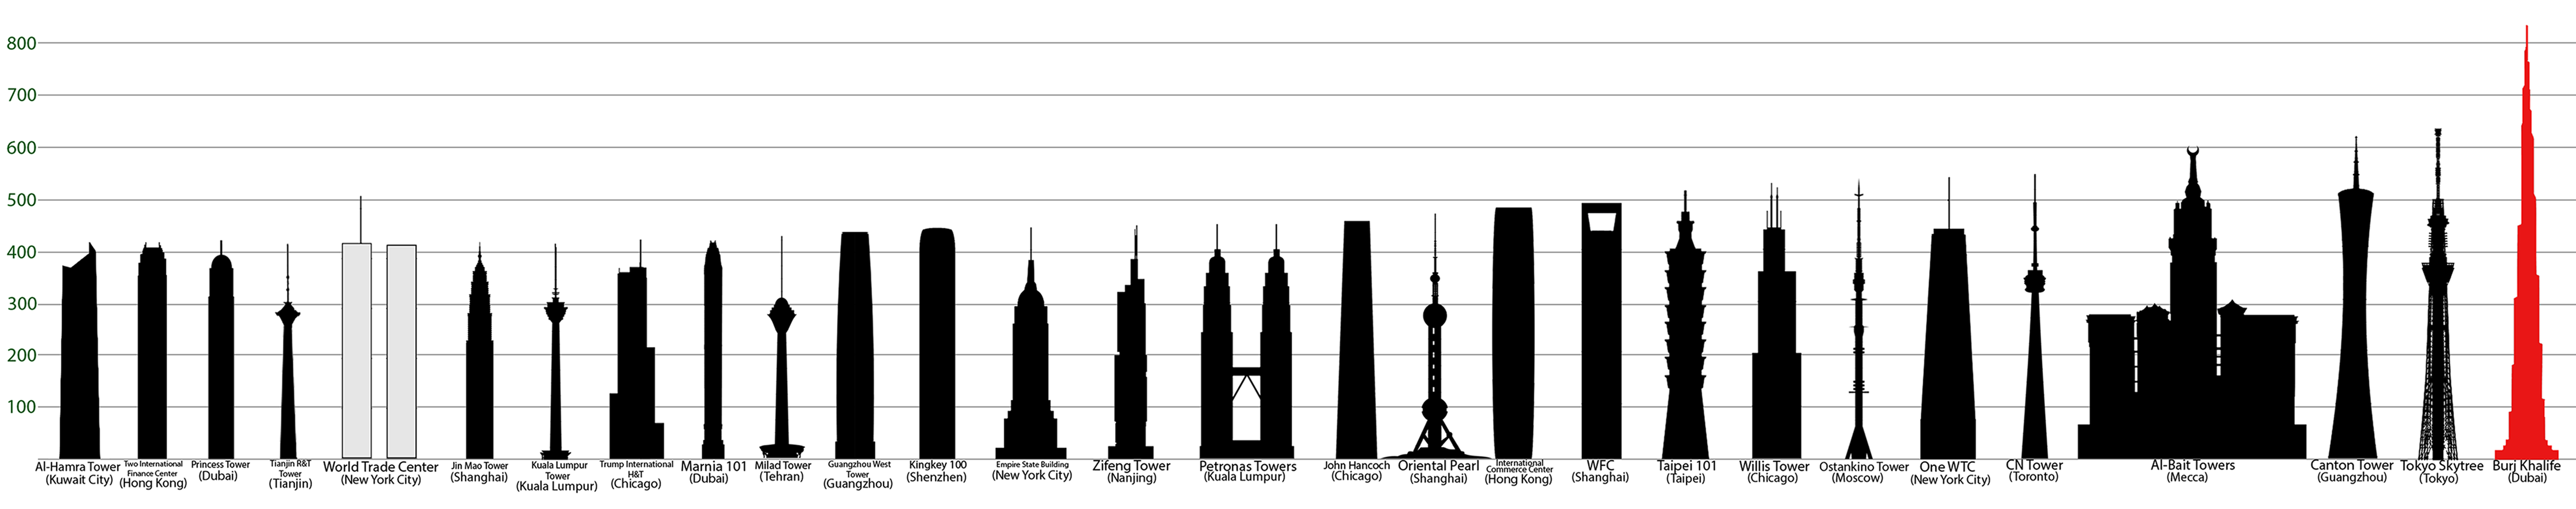 The_Tallest_Buildings_in_the_world.png